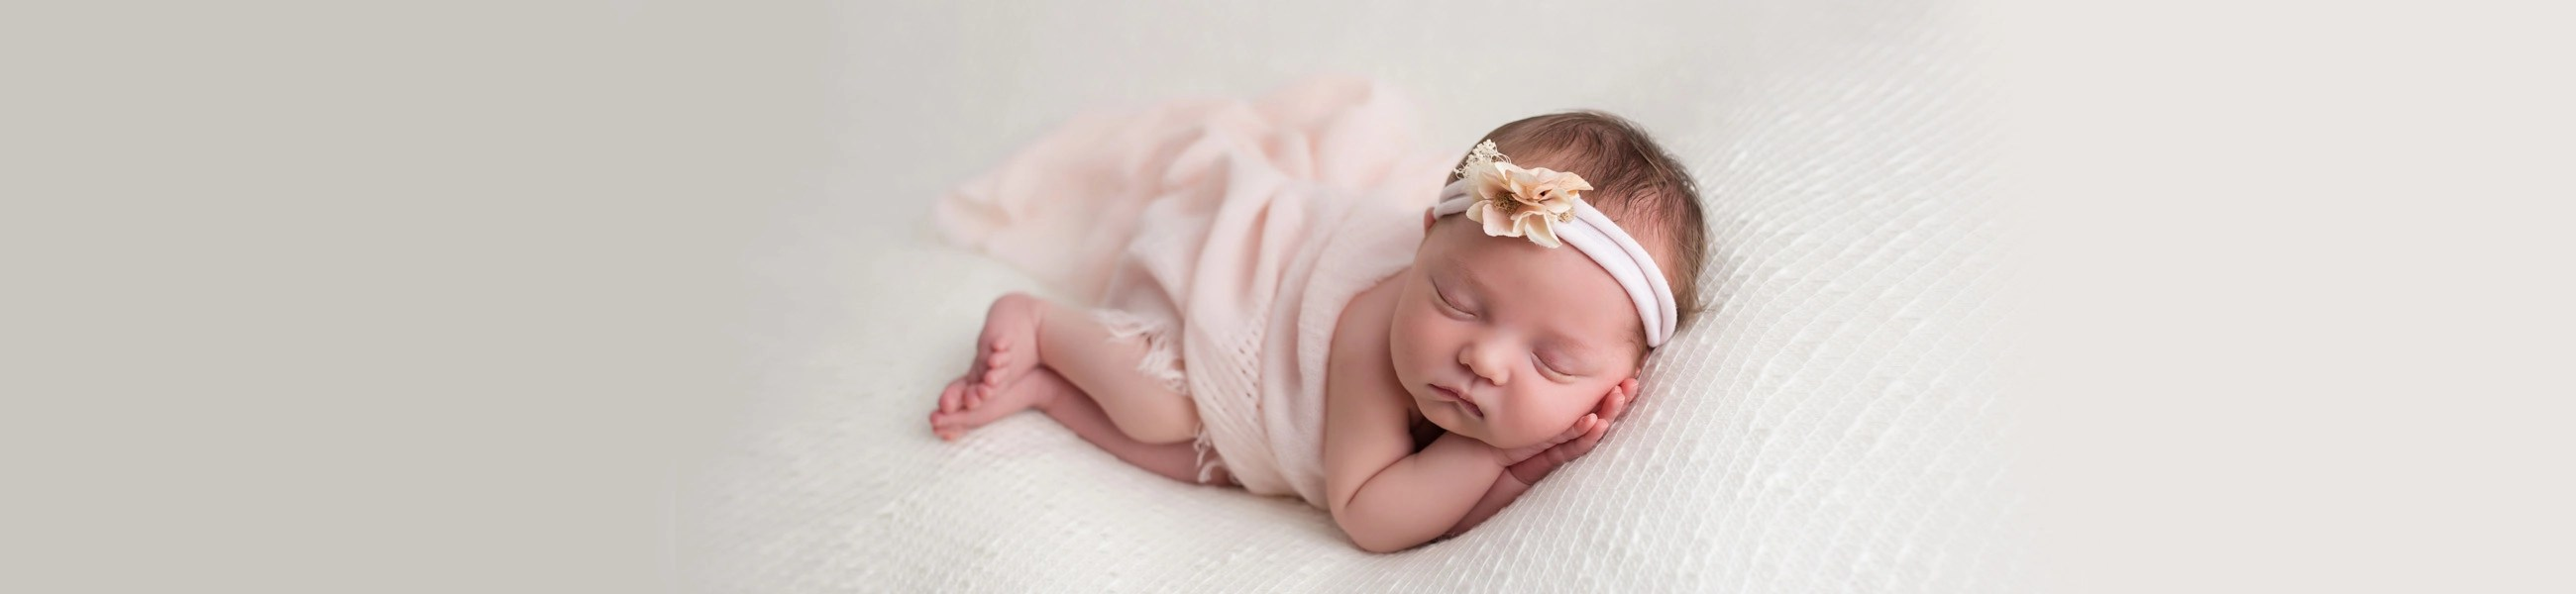 newborn-baby-girl-hudson-ohio